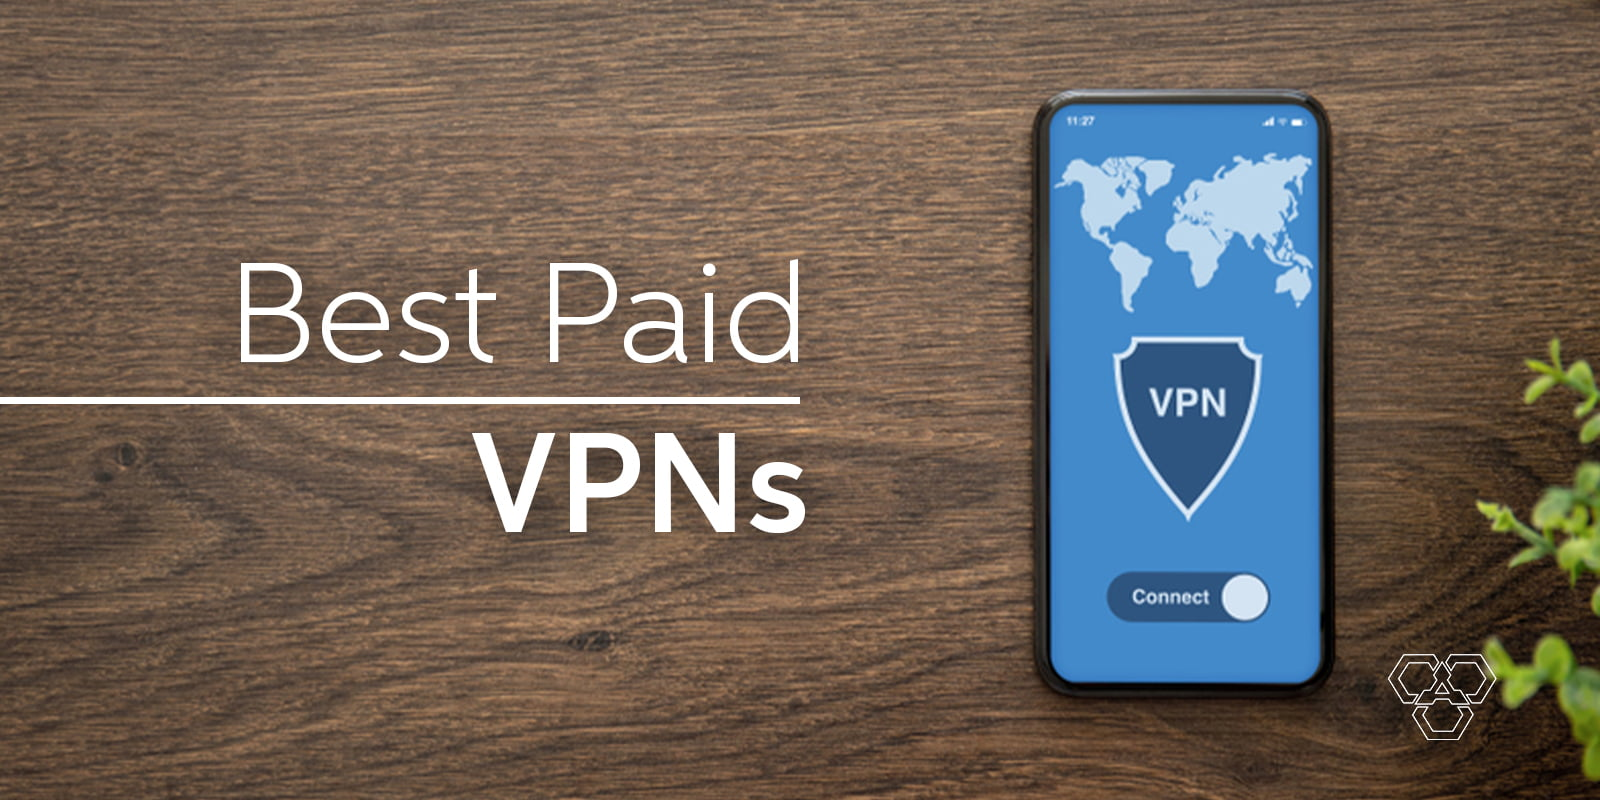 Best Paid VPNs for 2021